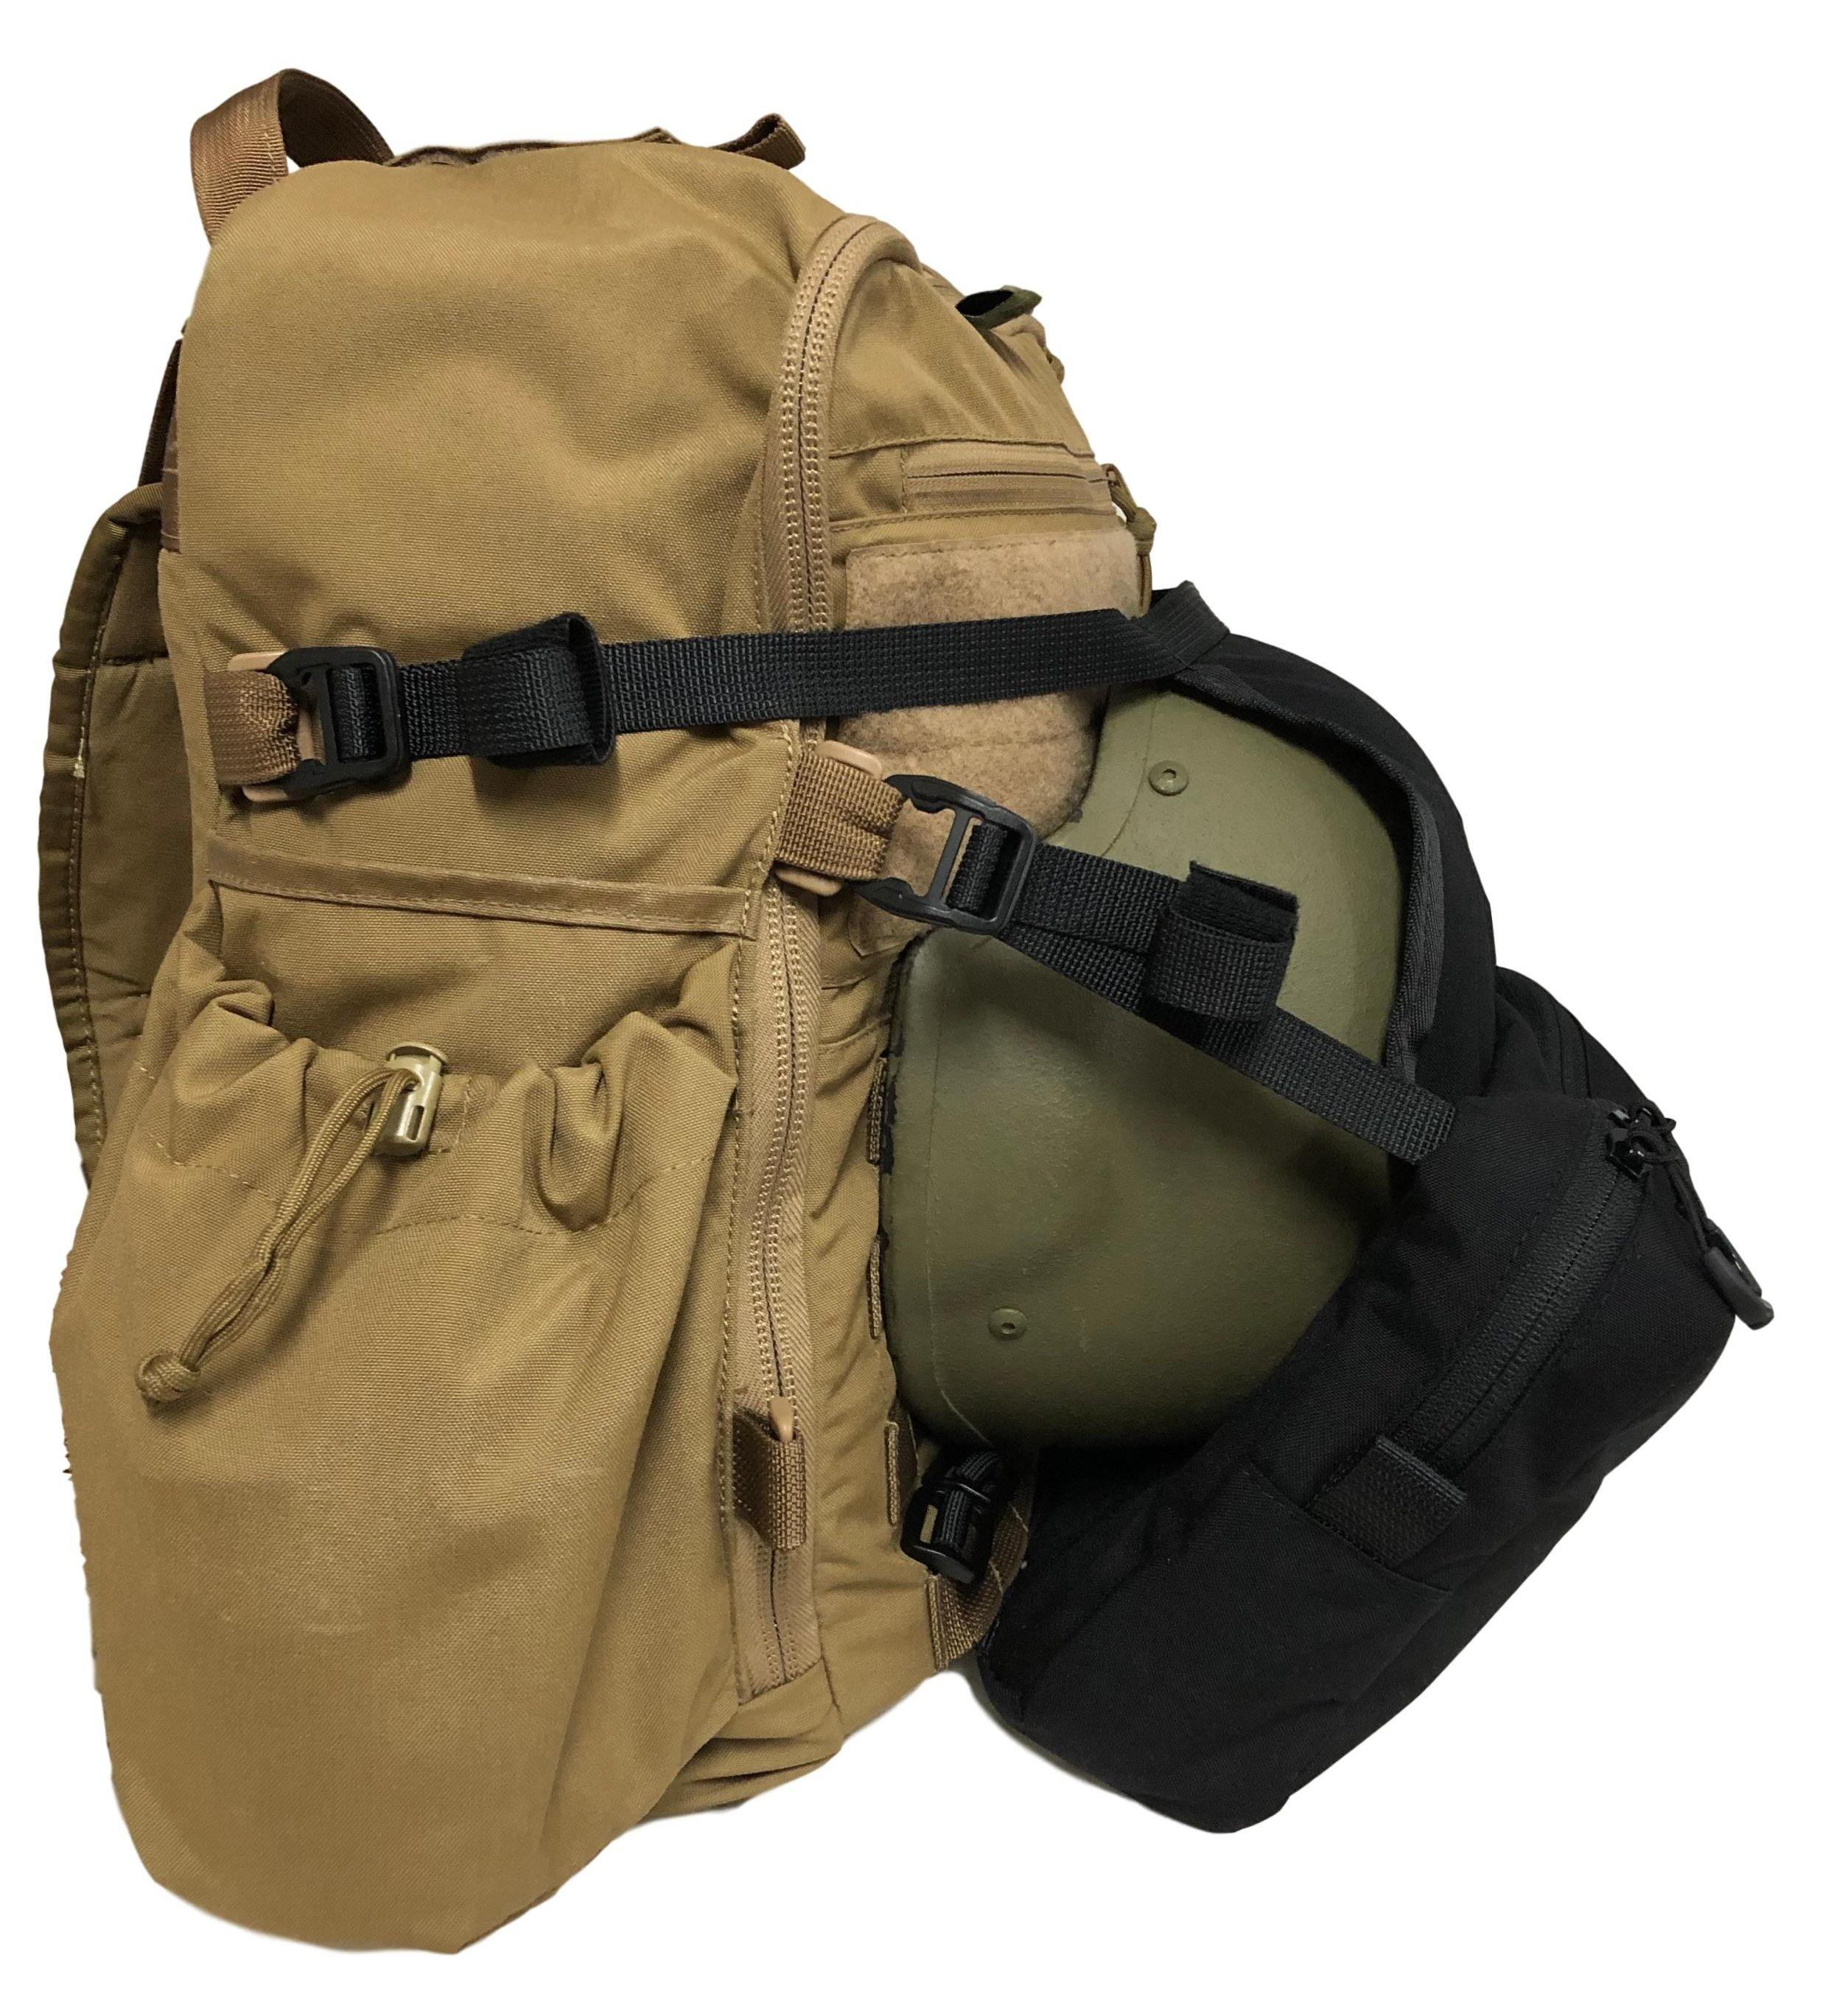 High Range Outdoors Australian Made Loady Pouch black Zulu backpack coyote brown side Beaver Tail molle helmet carrier